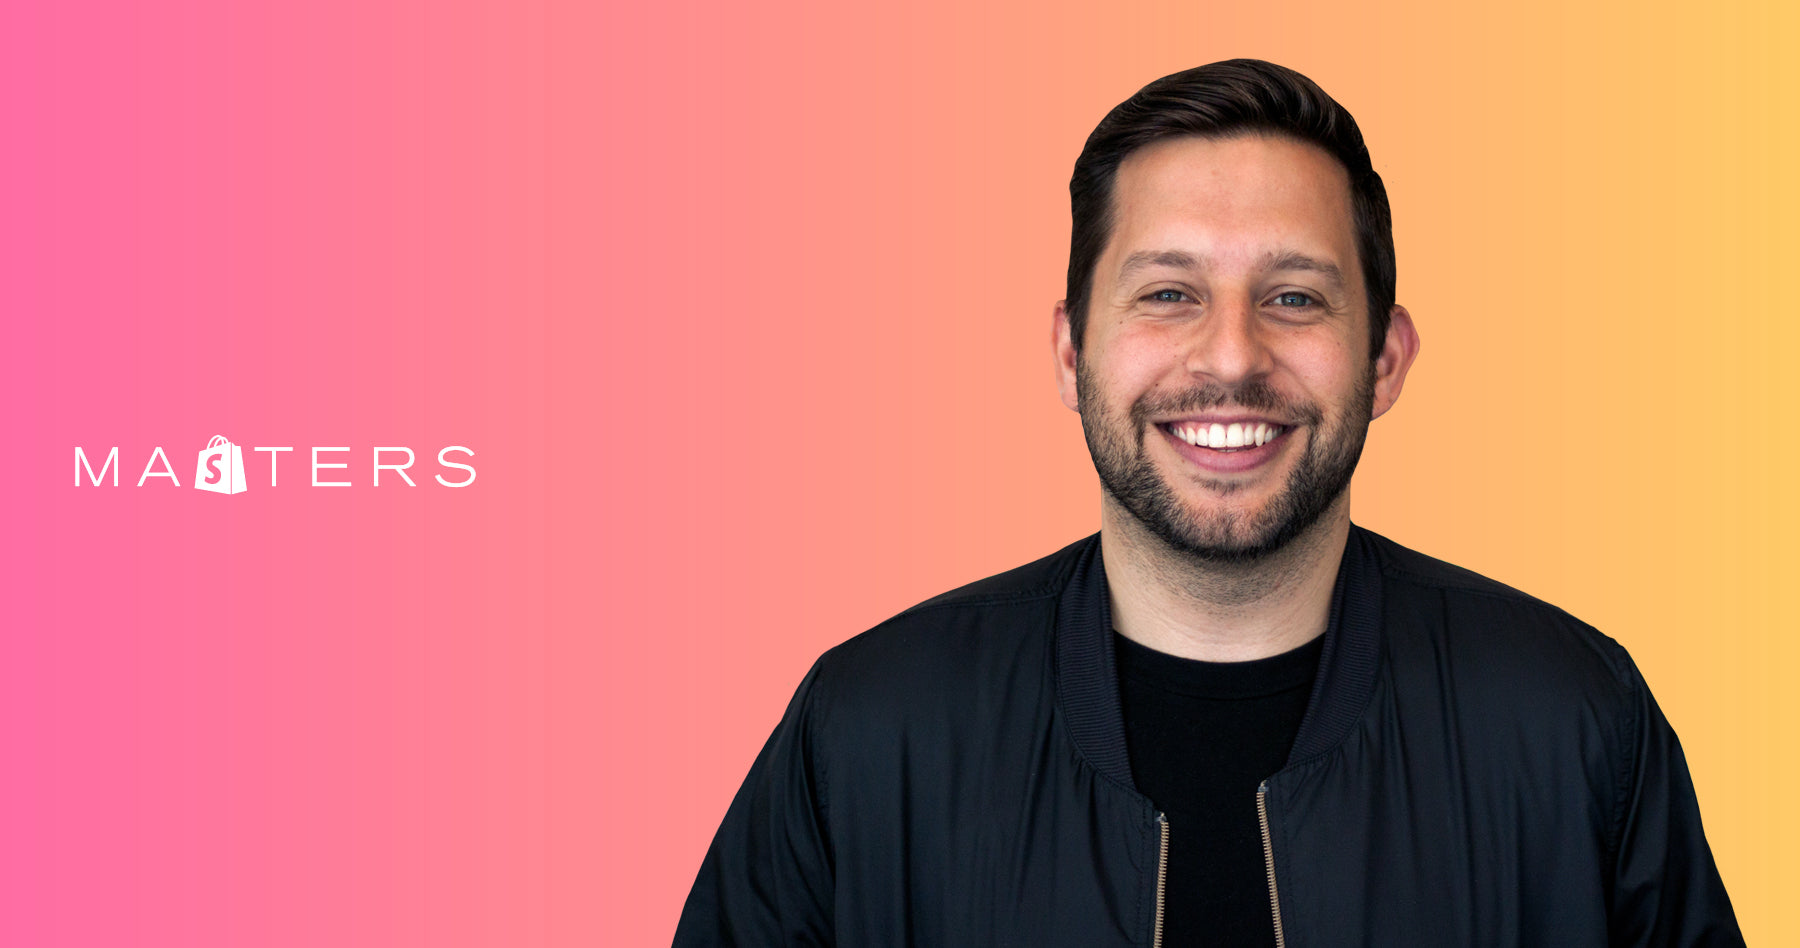 Chris Vaccarino the founder of Fanjoy.